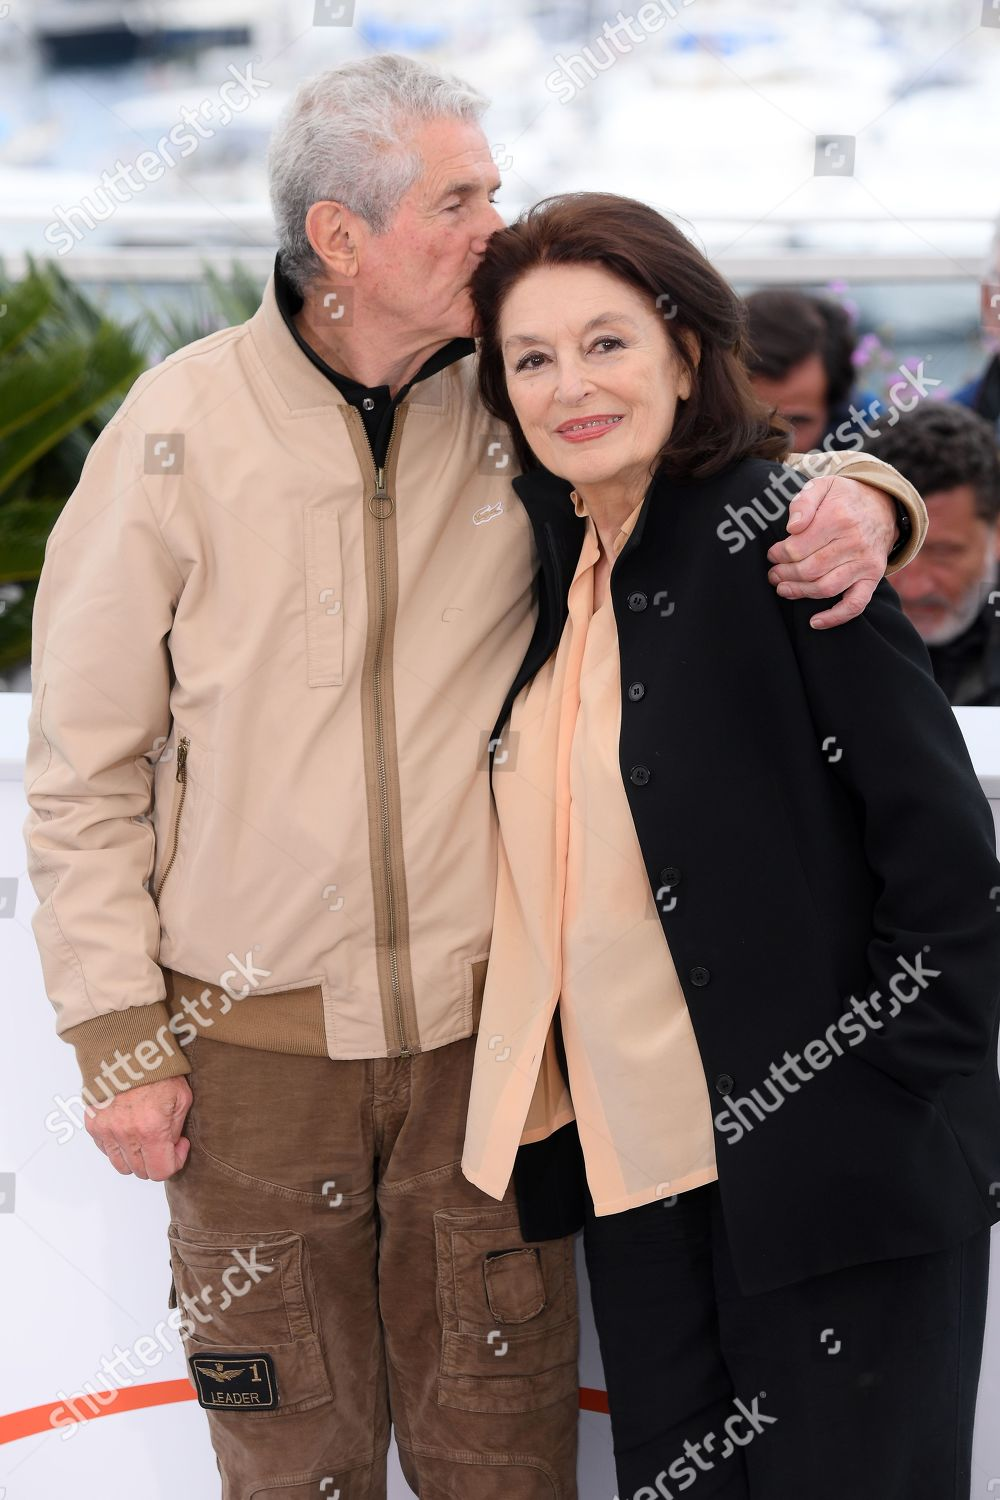 Claude Lelouch Anouk Aimee Editorial Stock Photo Stock Image Shutterstock The Best Years of a Life